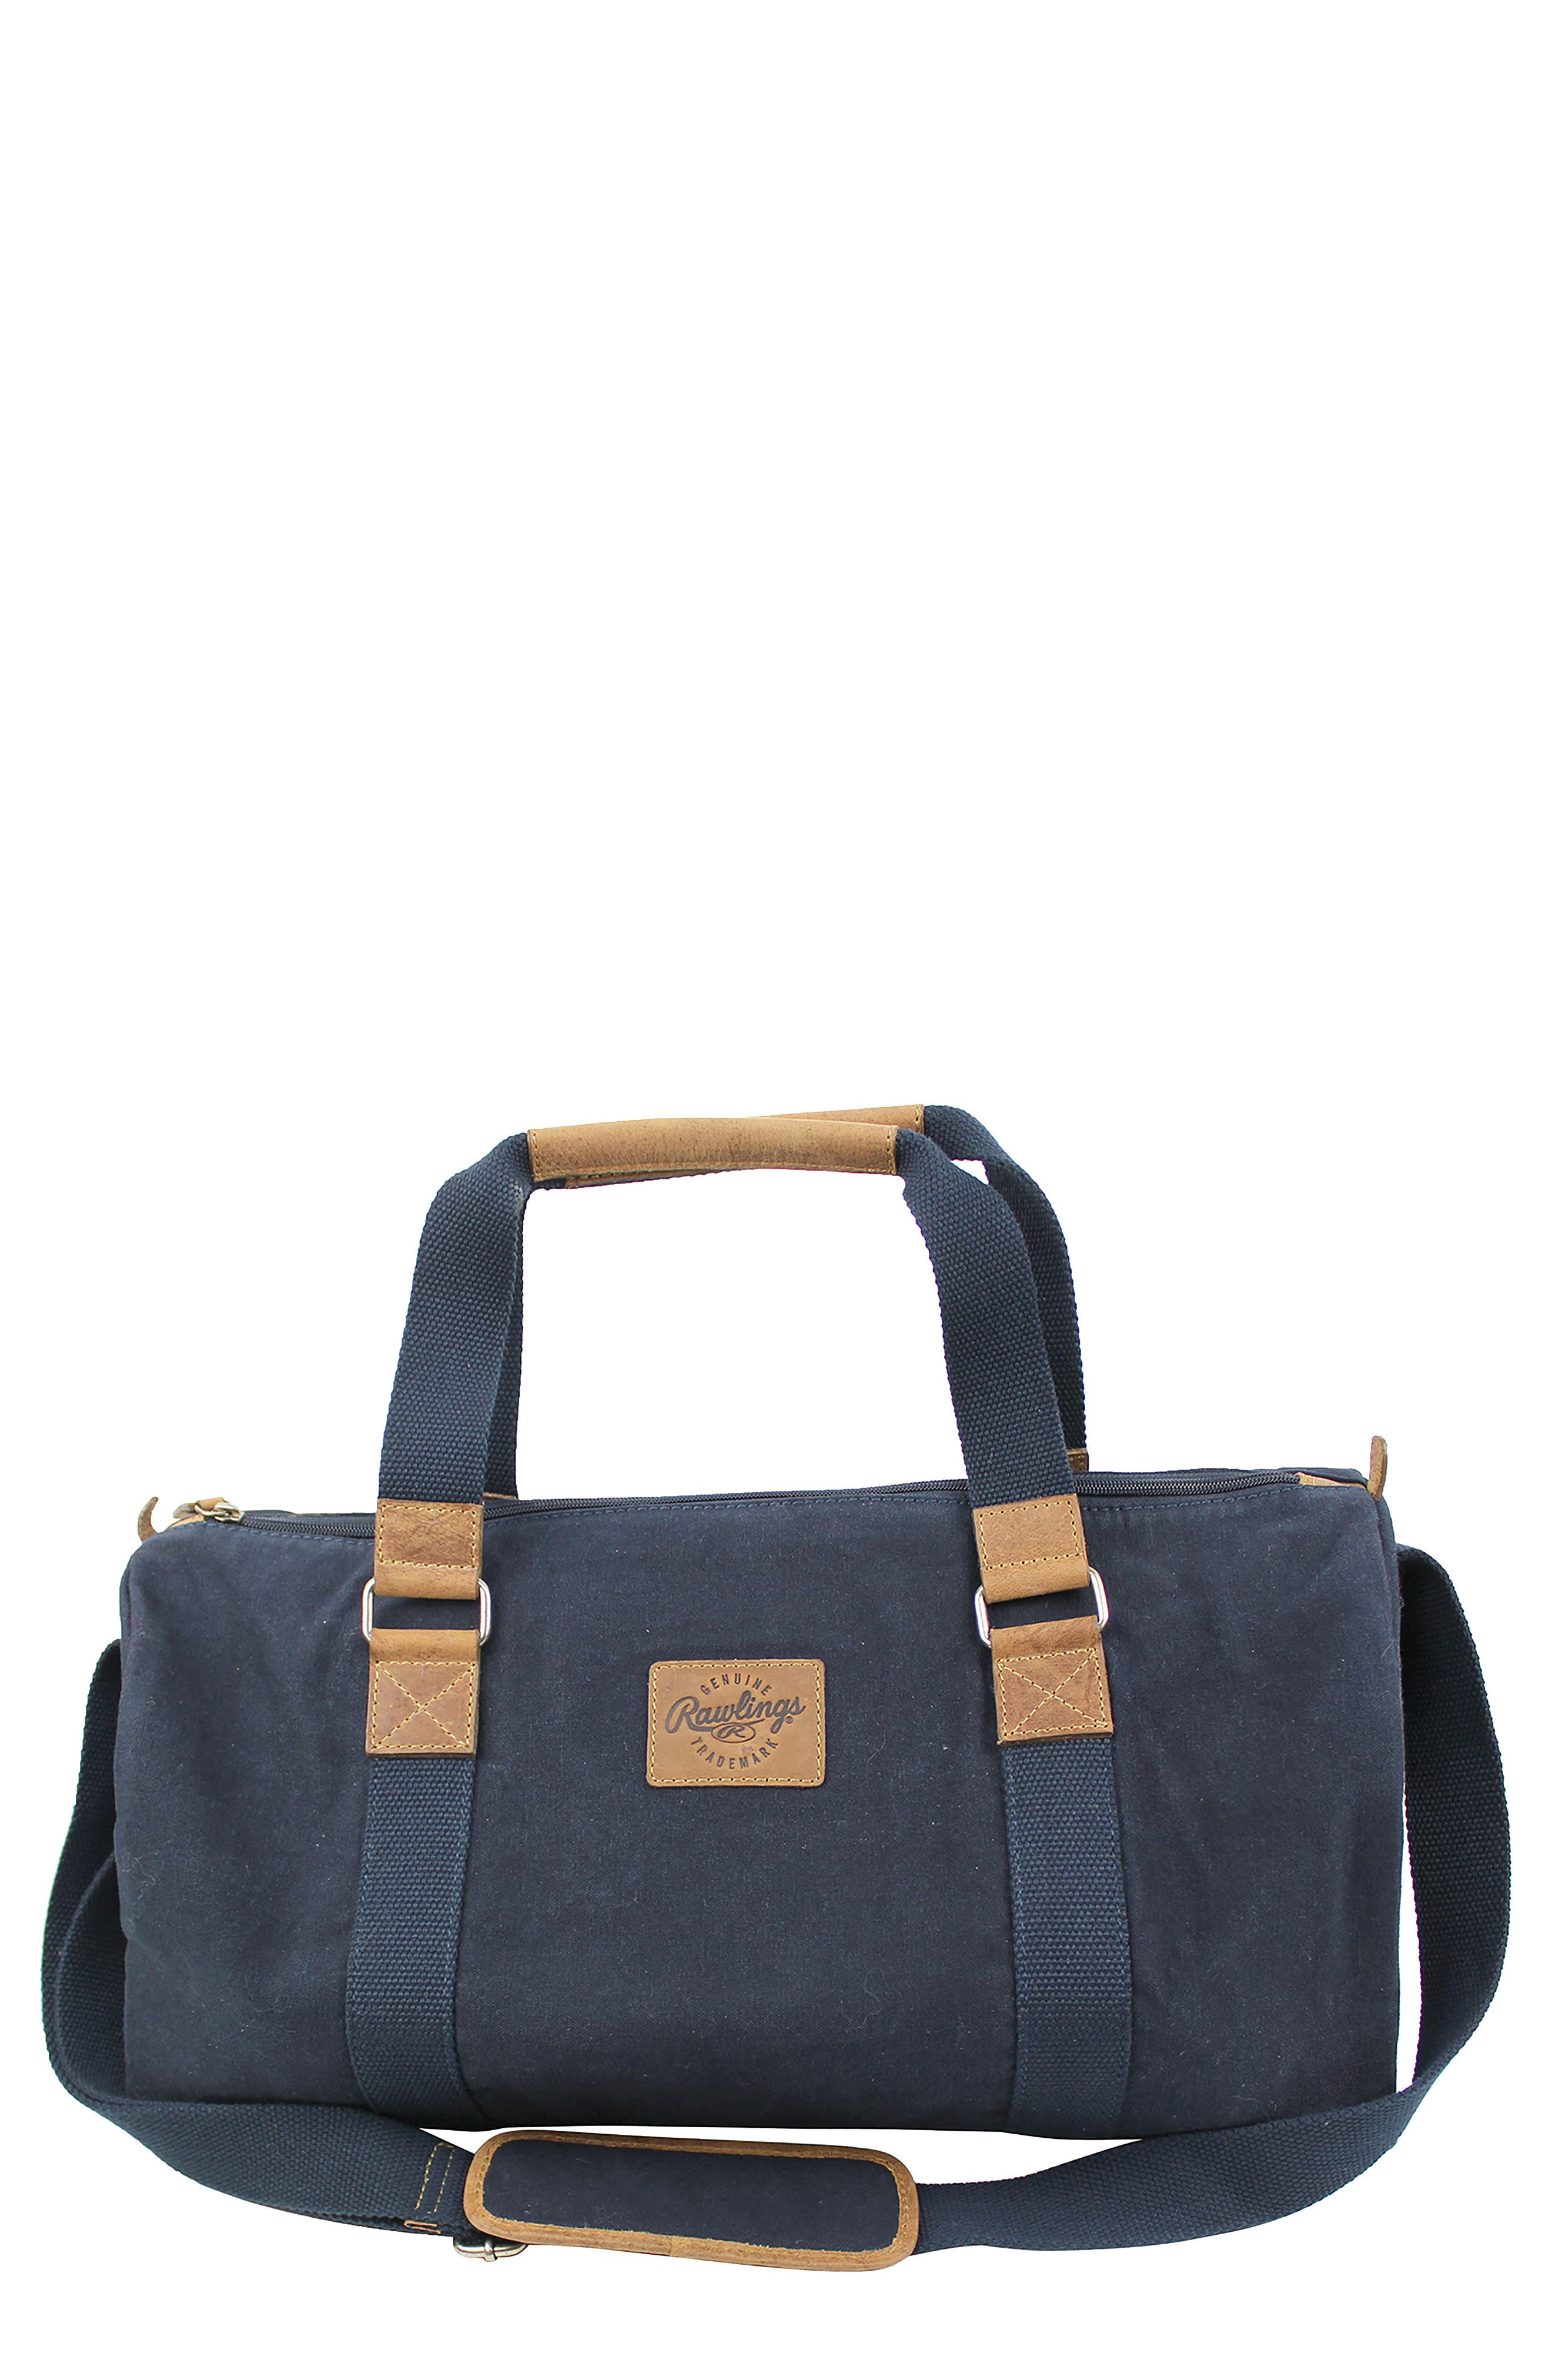 Canvas Duffel Bag,                         Main,                         color, Navy